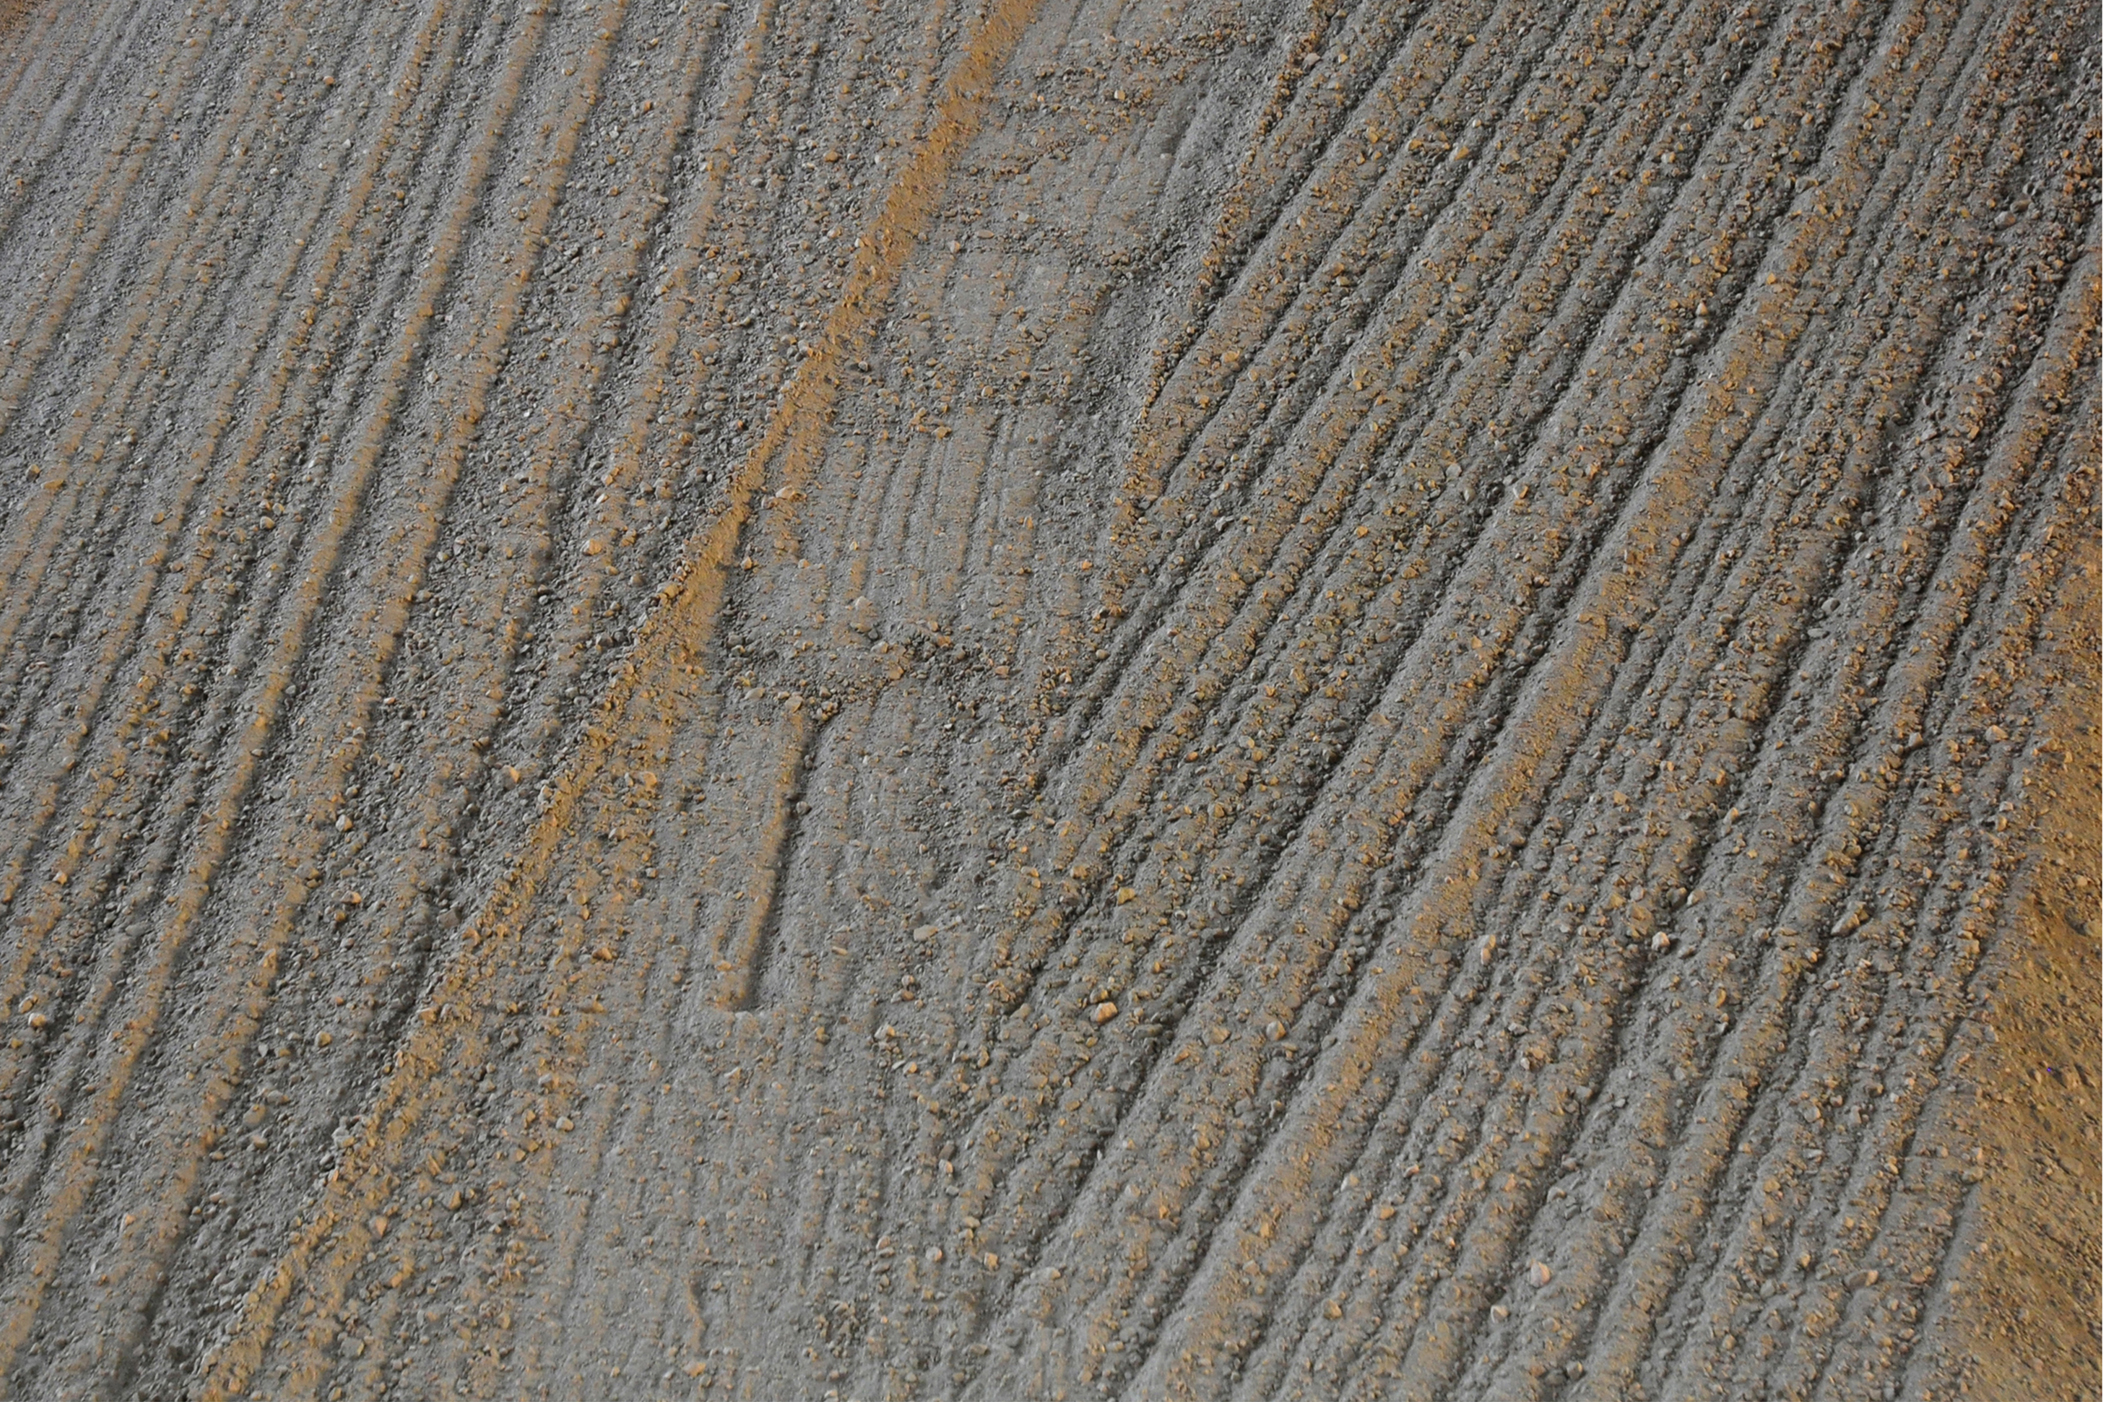 a pattern of straight lined grooves in a muddy ground